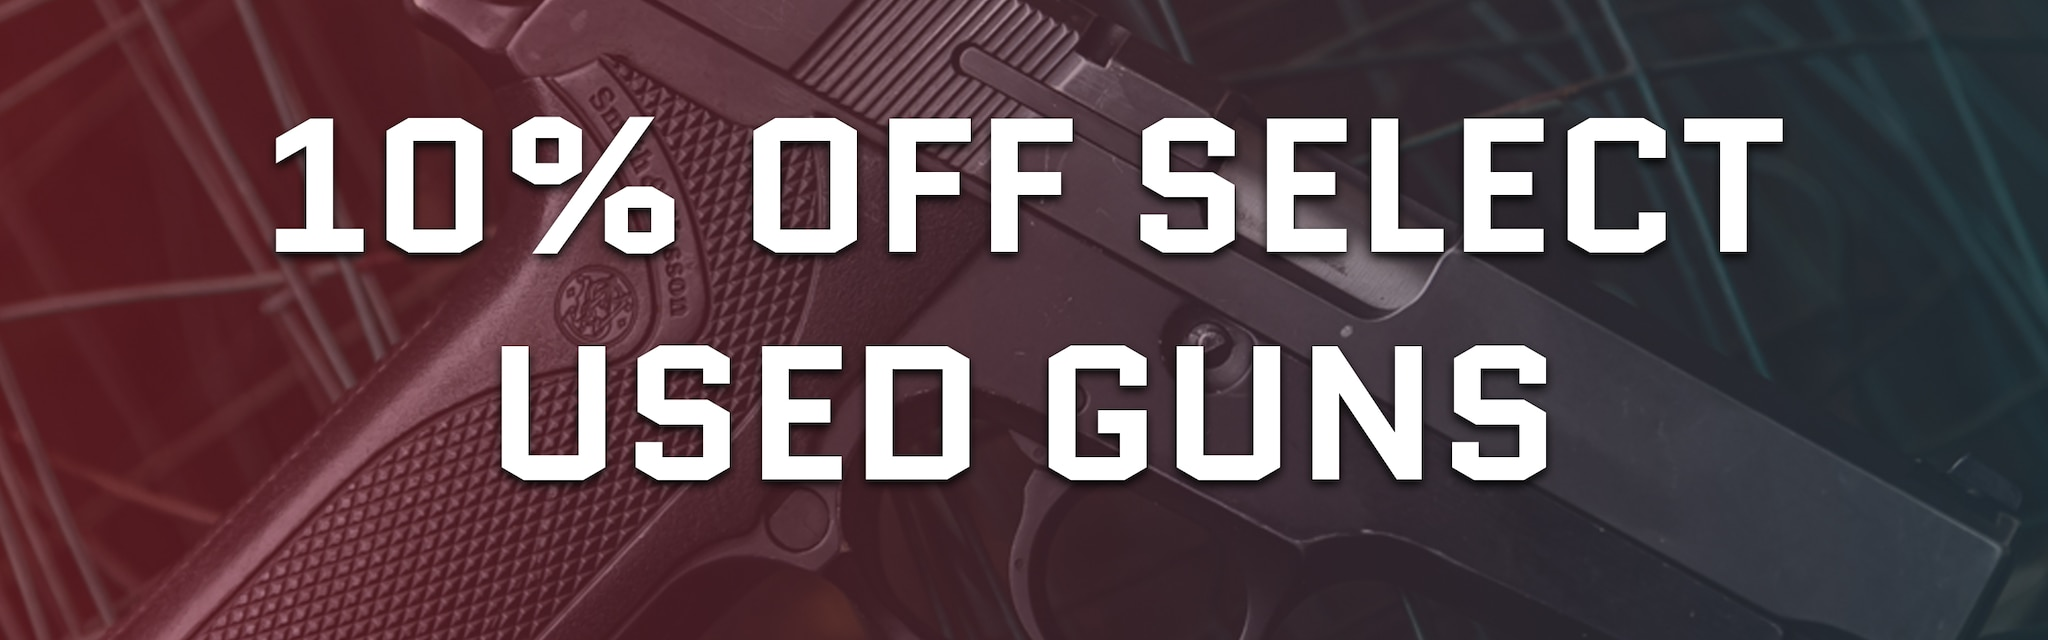 10% off all select used guns